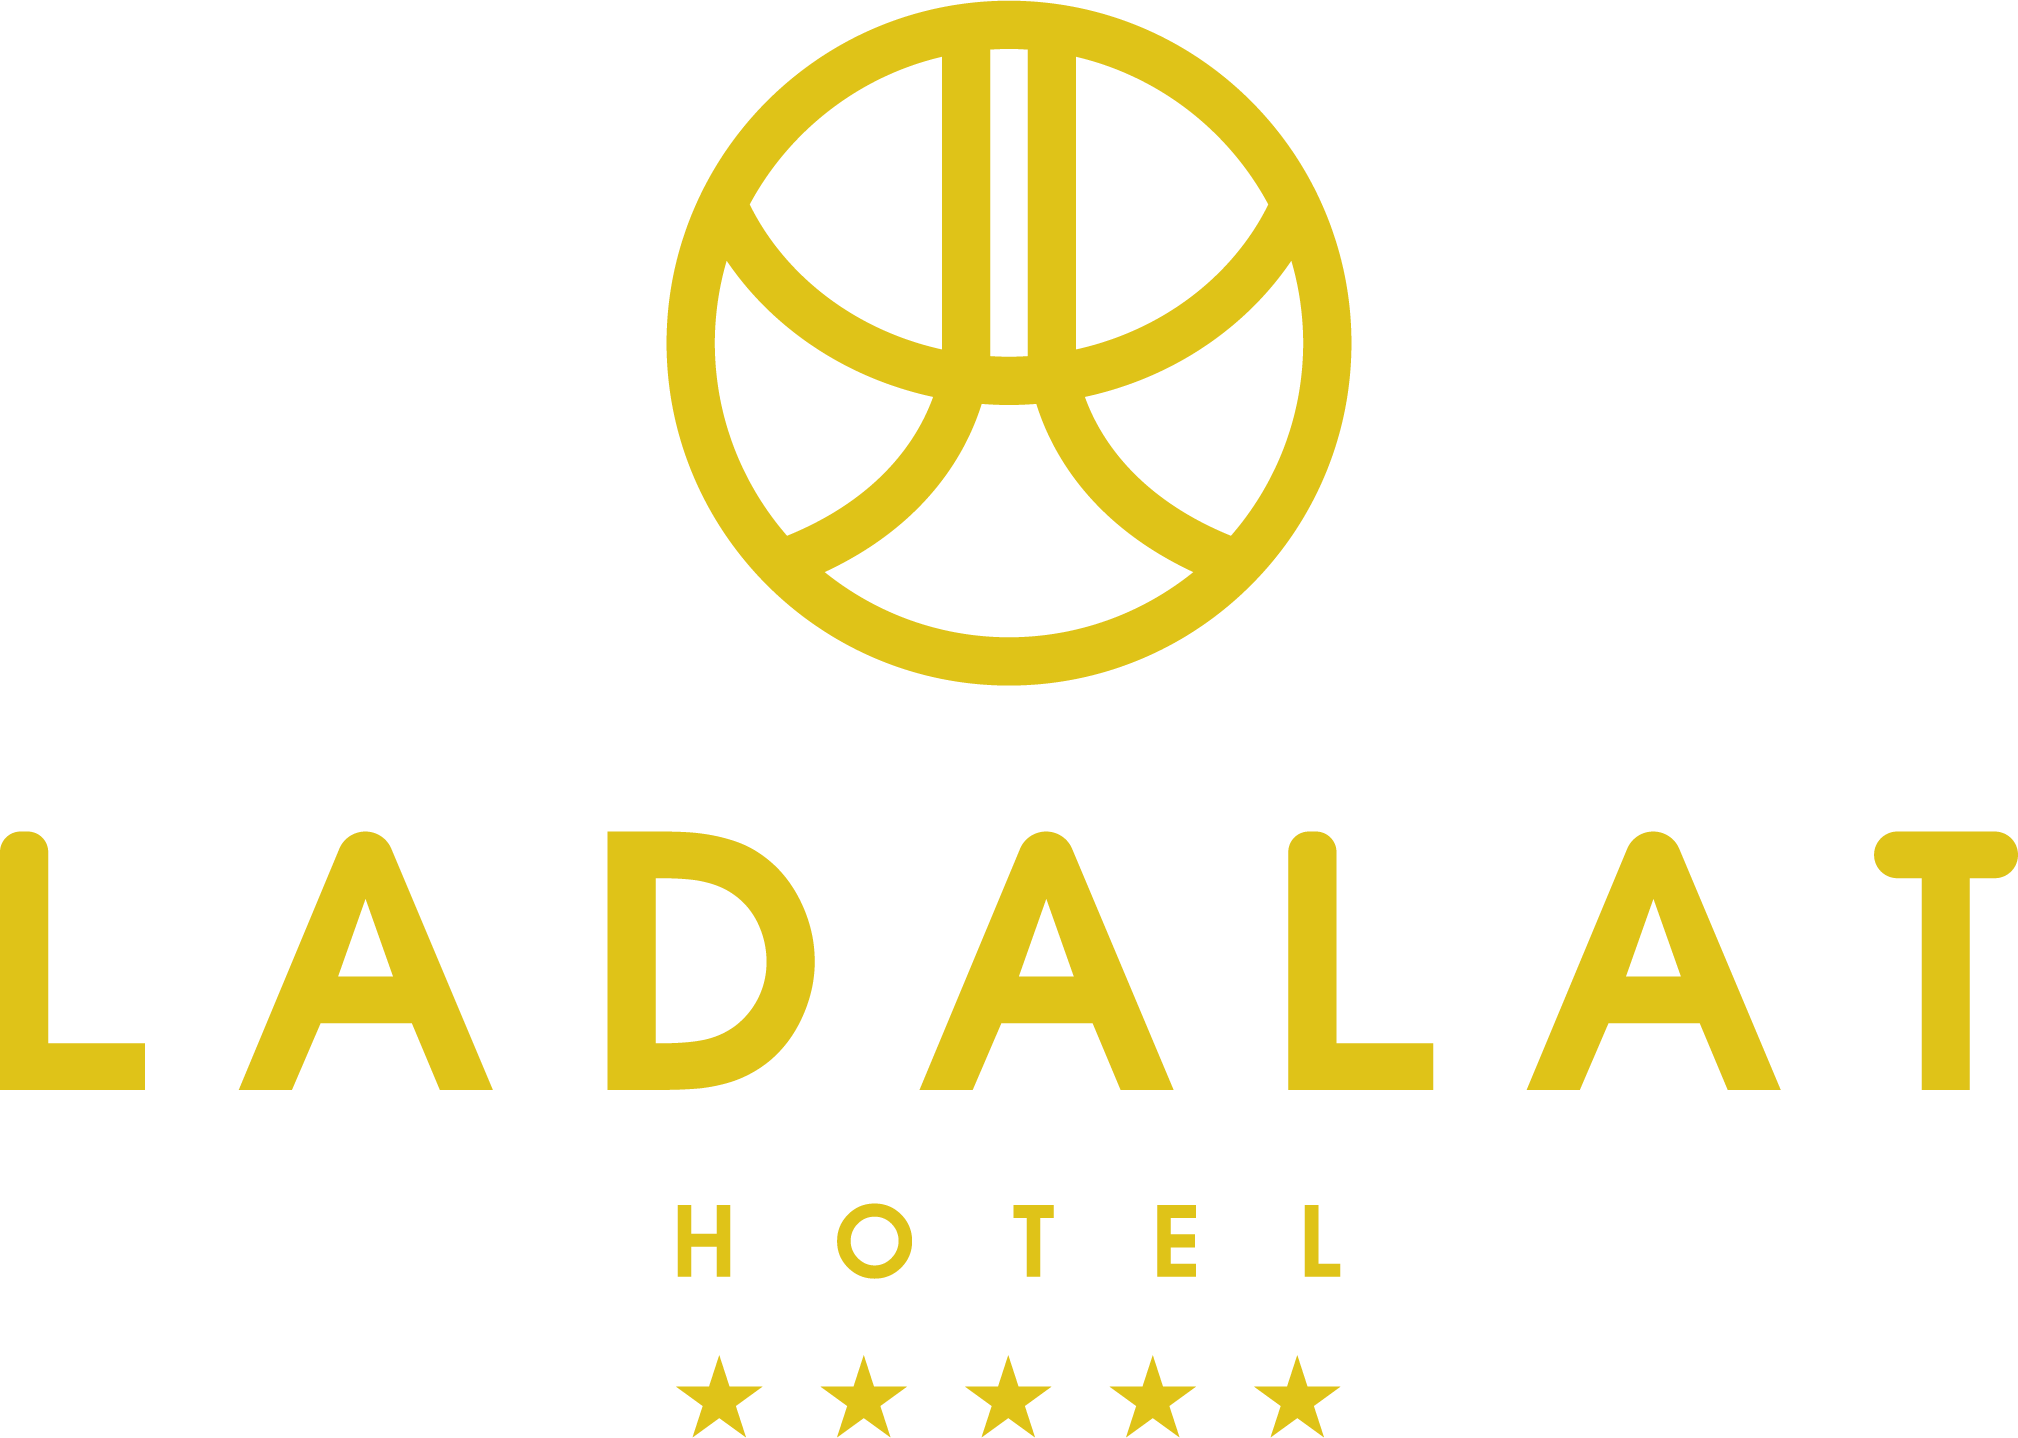 Ladalat Hotel – Five Stars Hotel In Dalat City